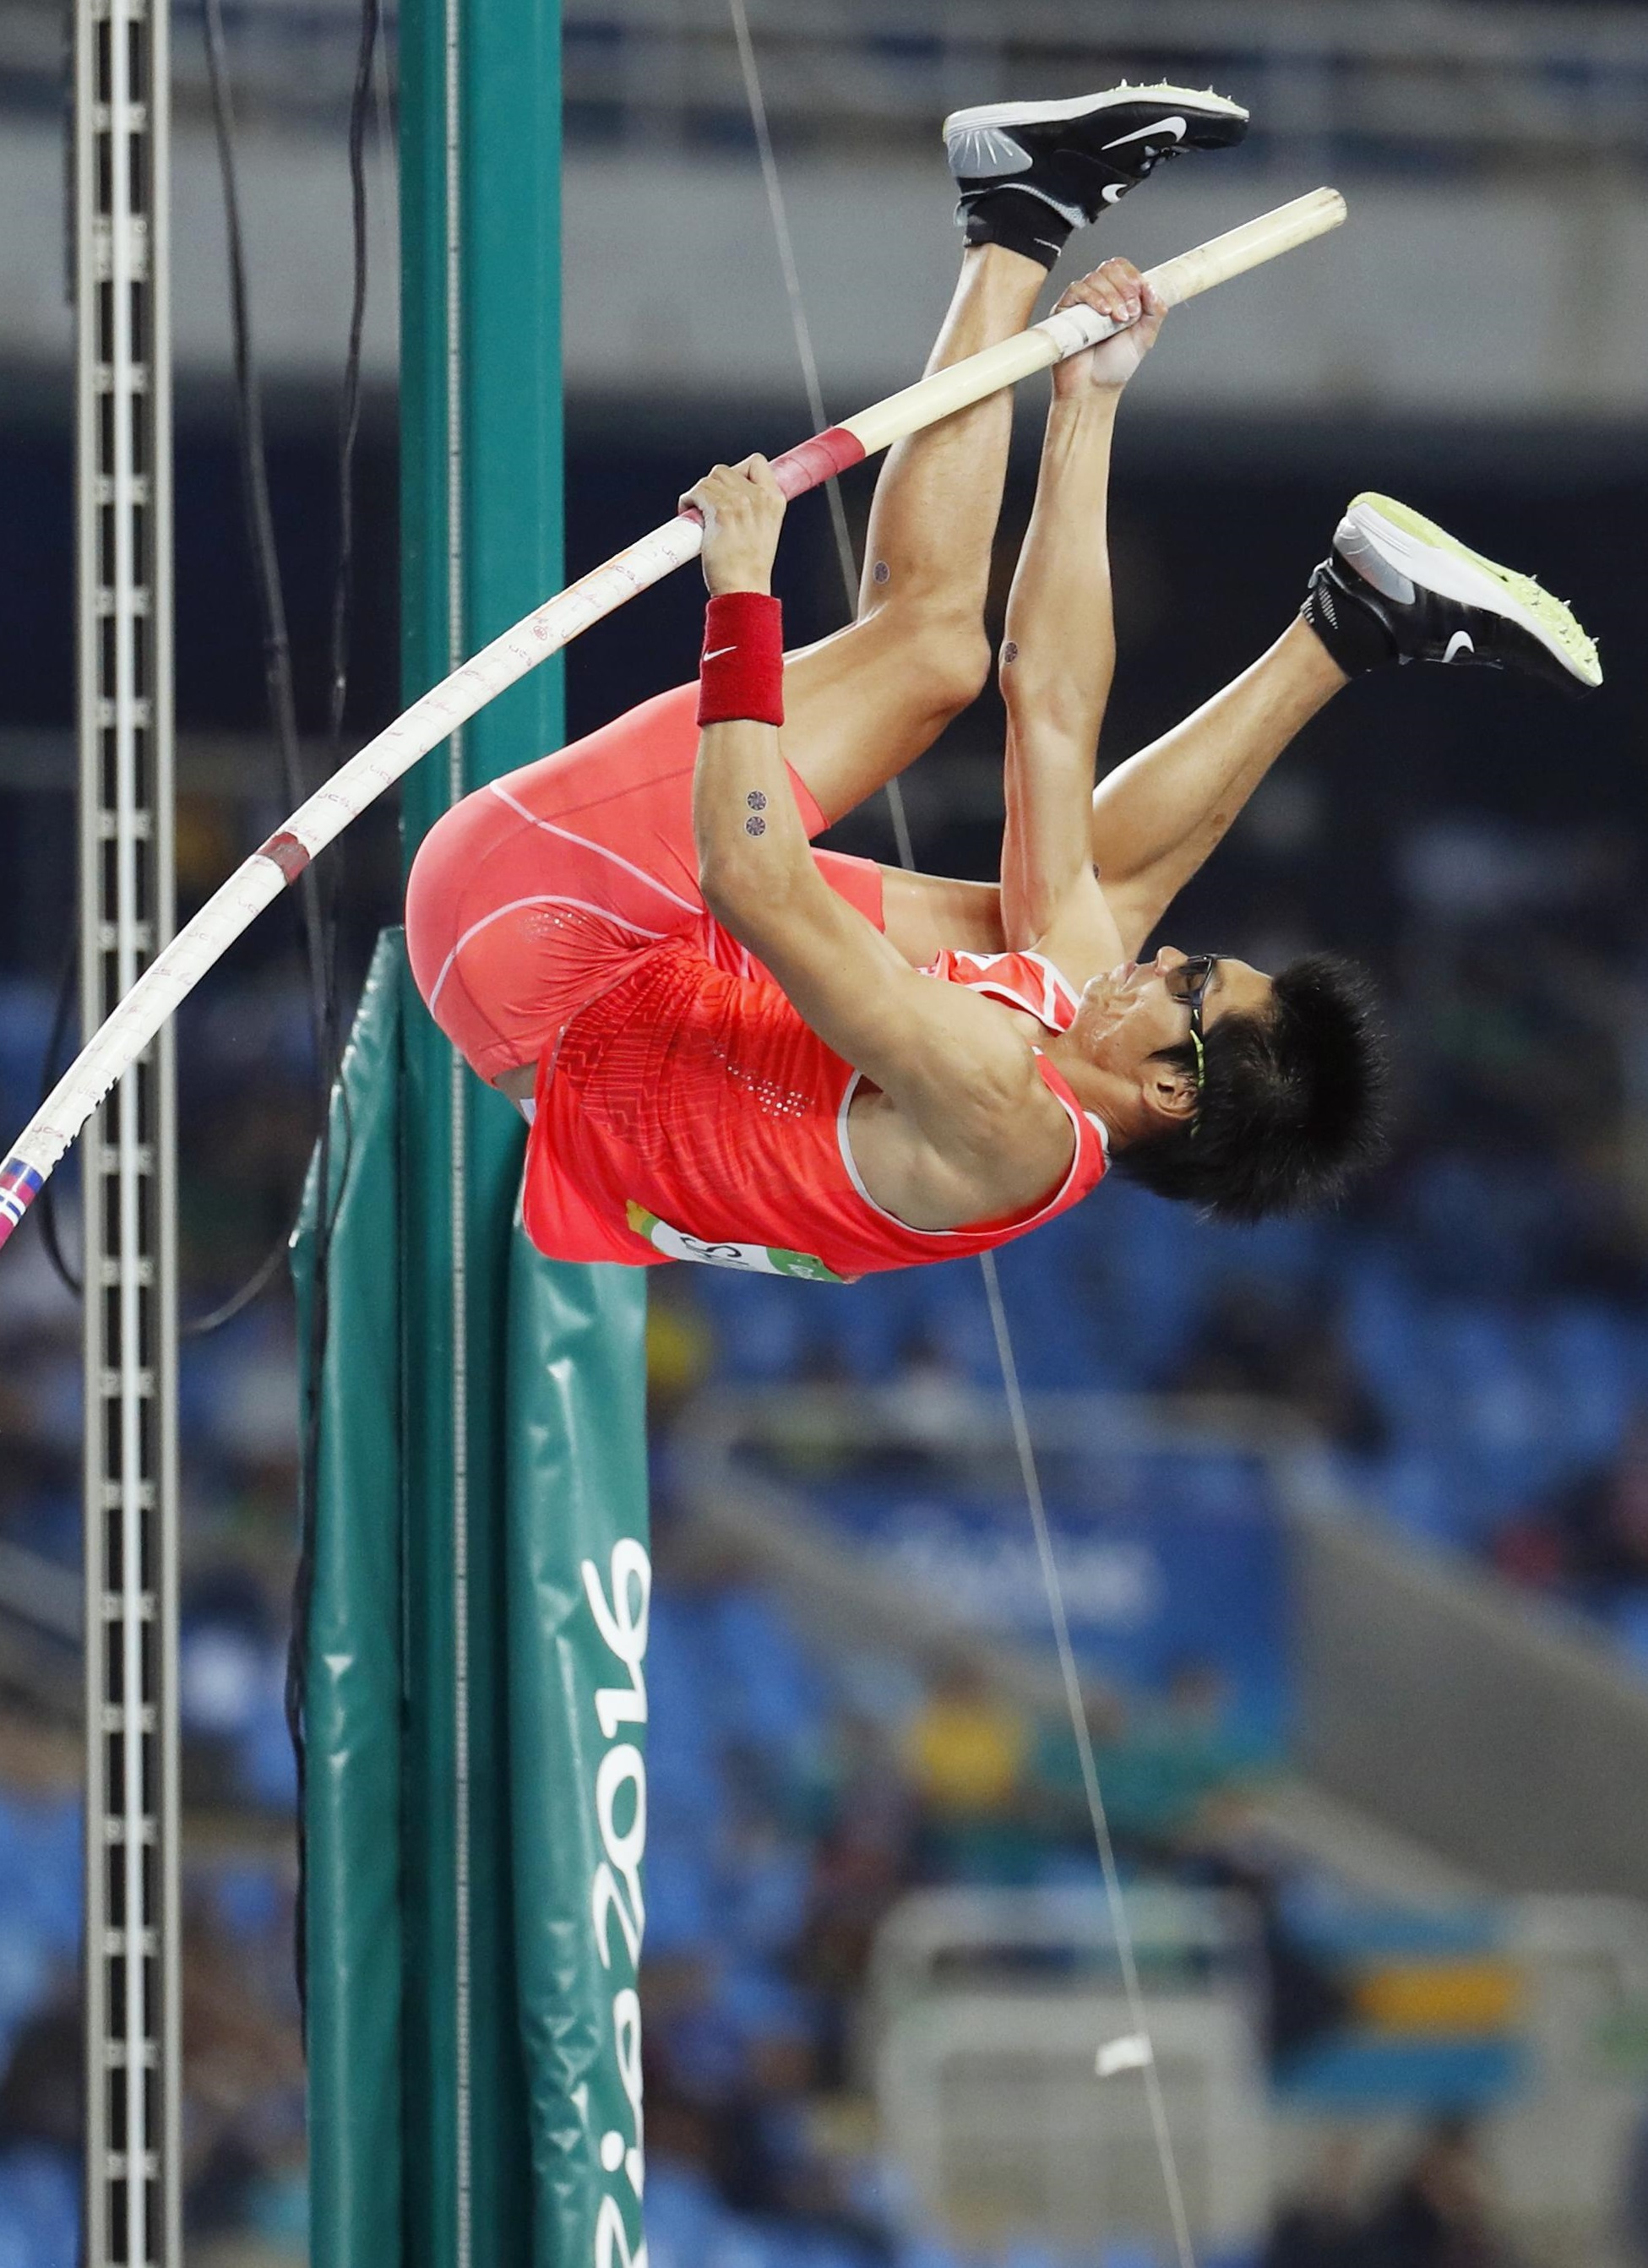 Daichi Sawano makes an attempt in the men's pole vault final during Monday's event at the 2016 Summer Olympics in Rio de Janeiro. | KYODO